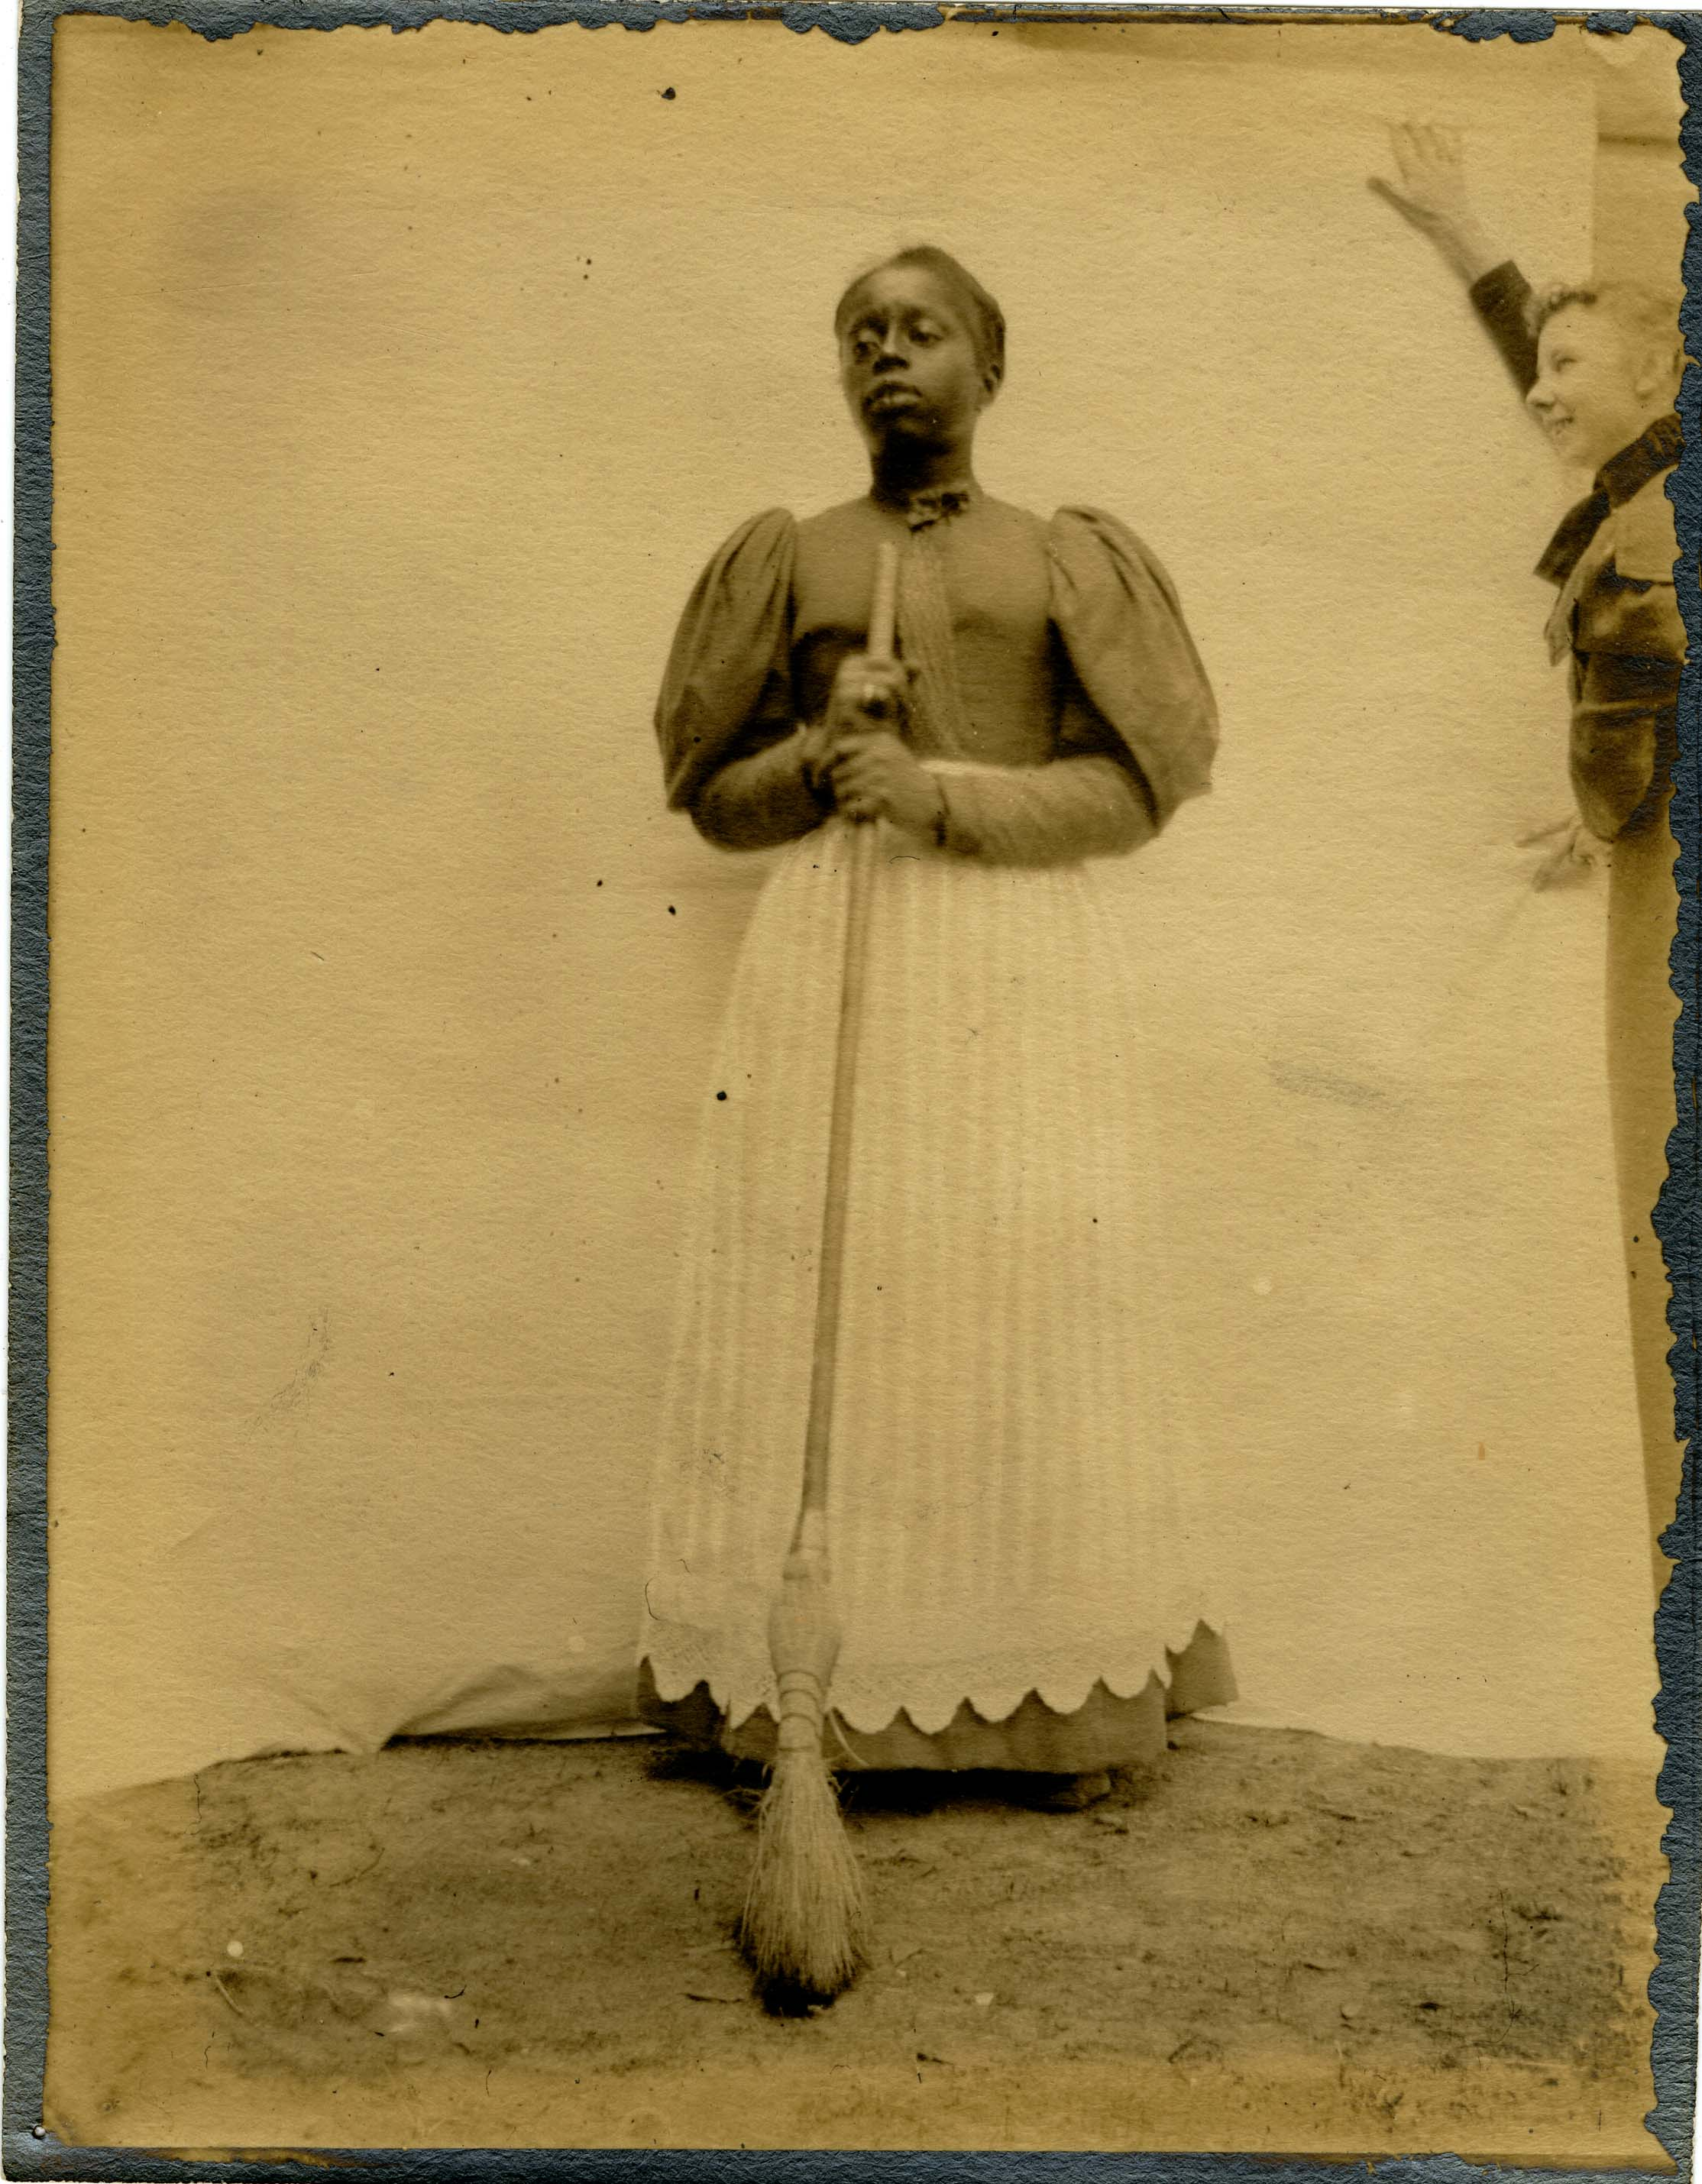 African American woman holds broom while white woman stands aside.